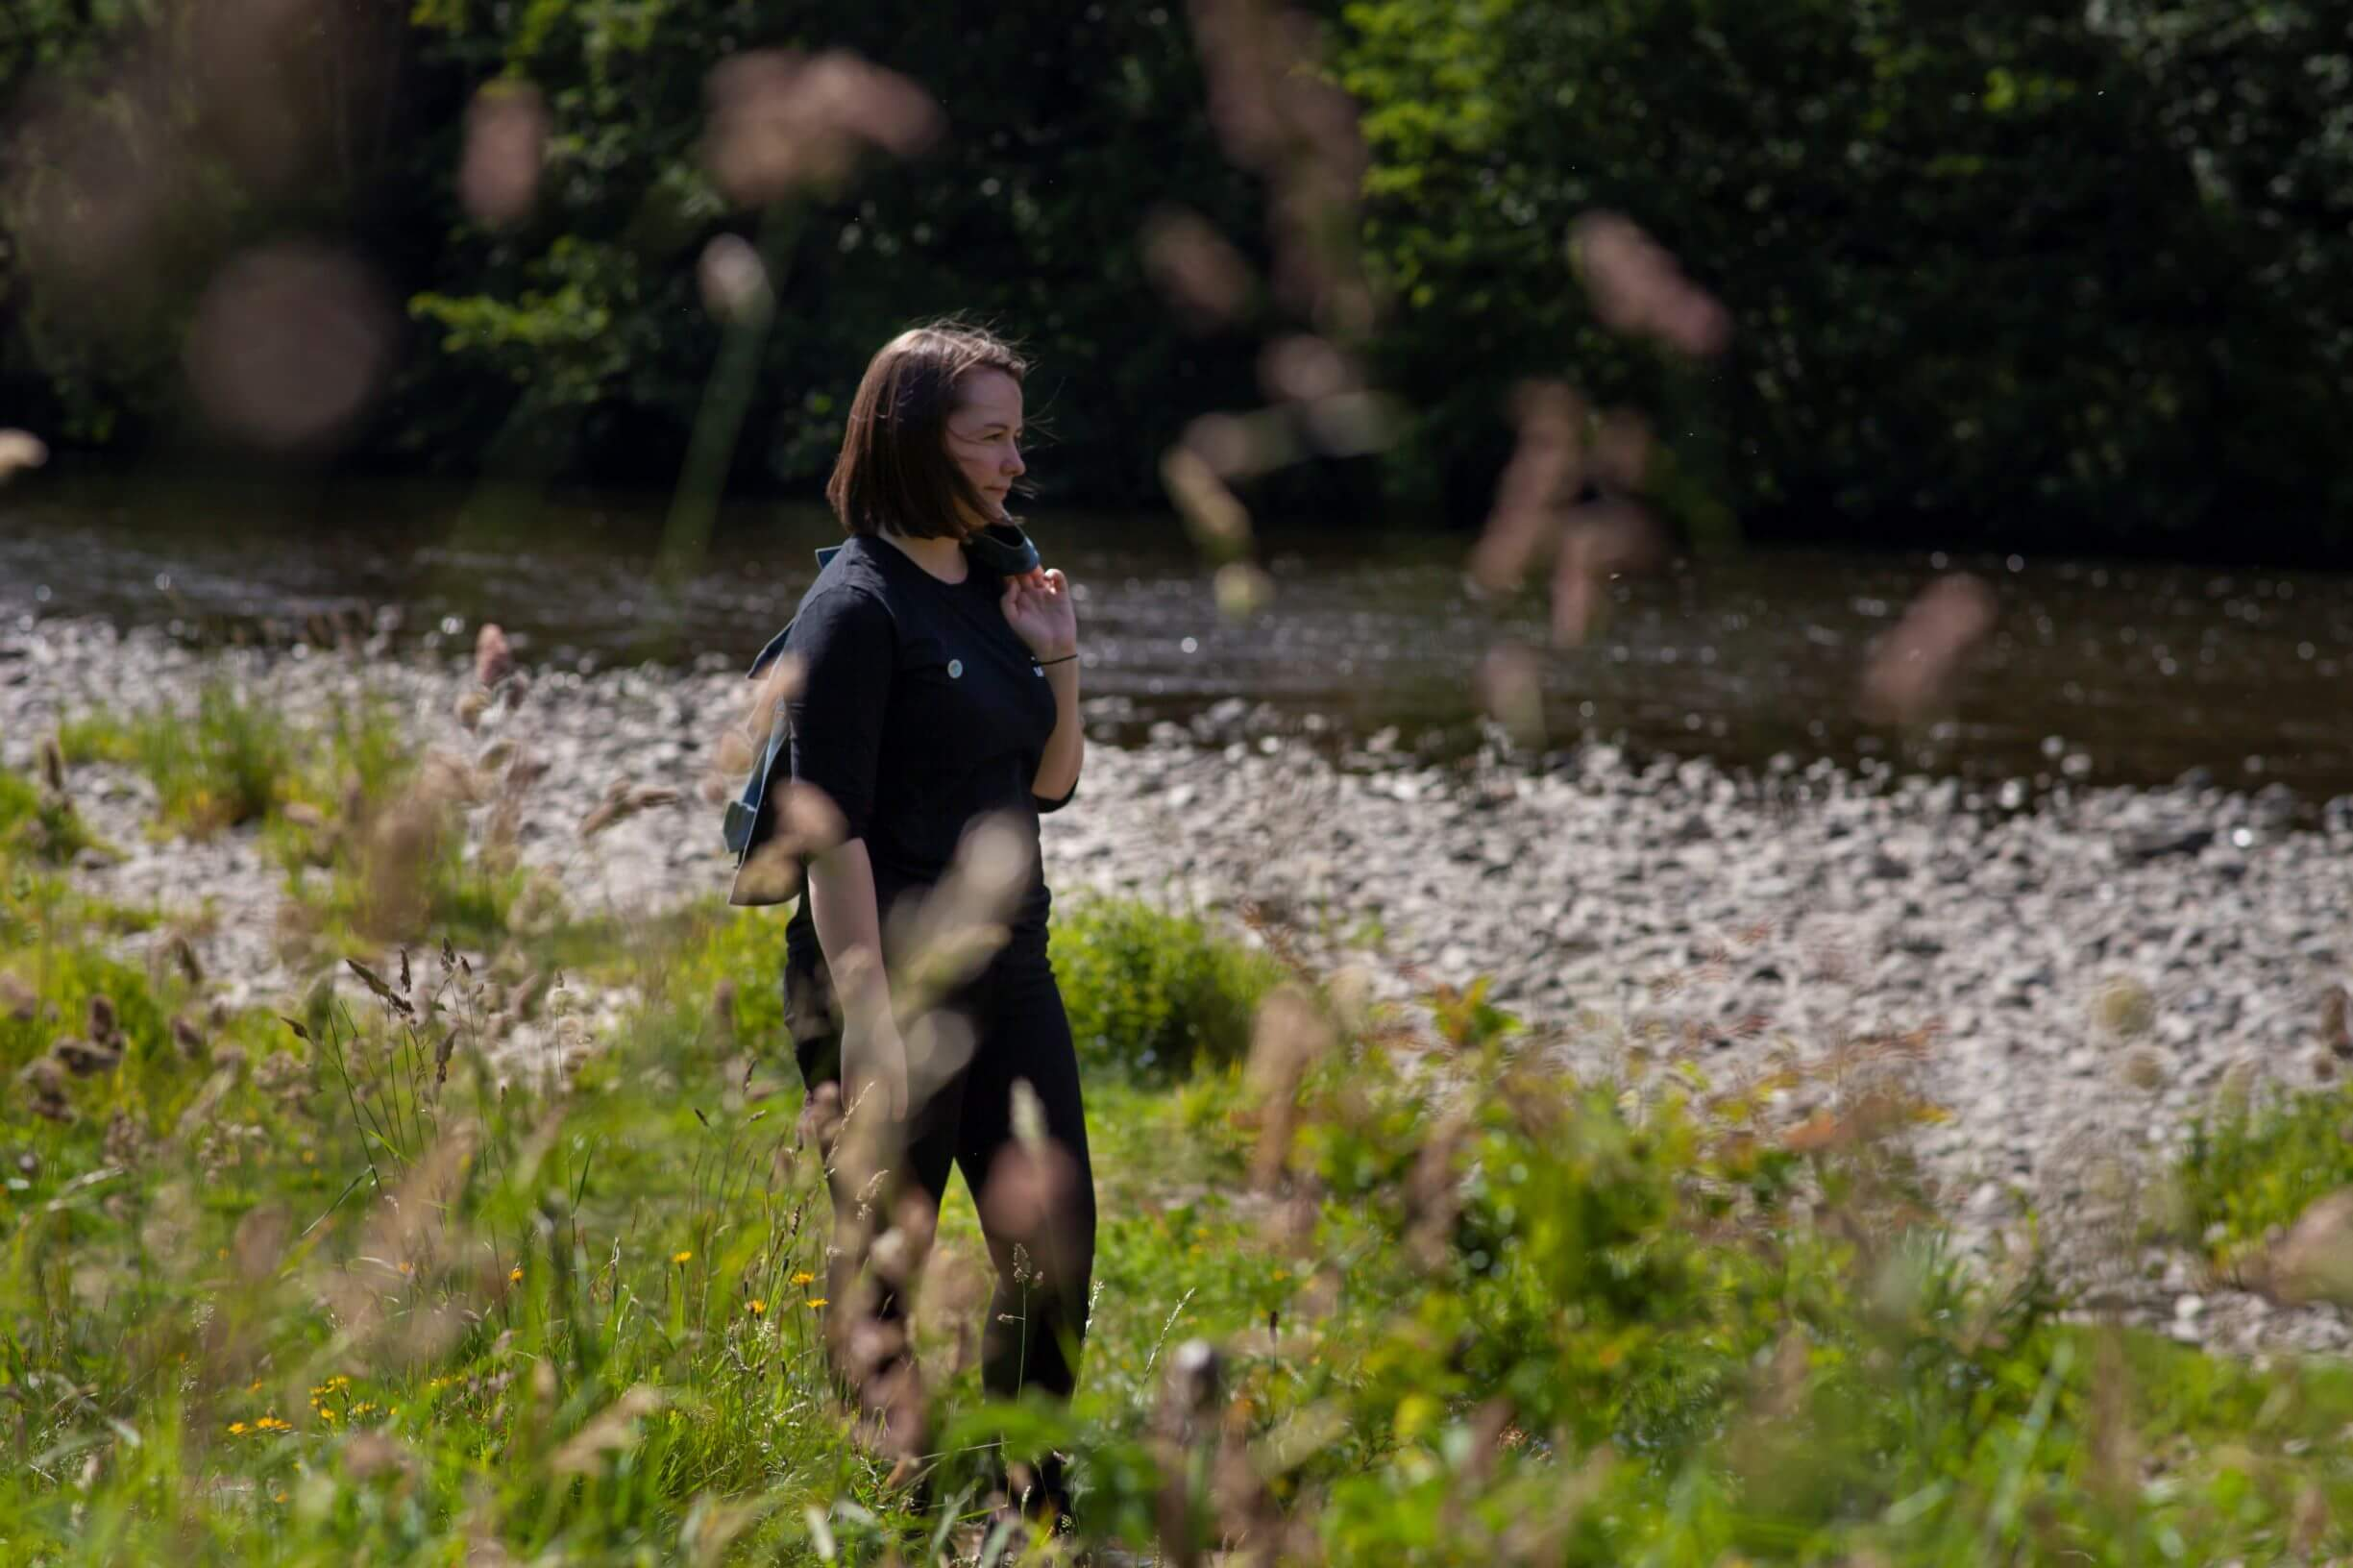 Shannon McFarlane of Tempest Brewery walks beside a river in the sunshine with grasses in the foreground